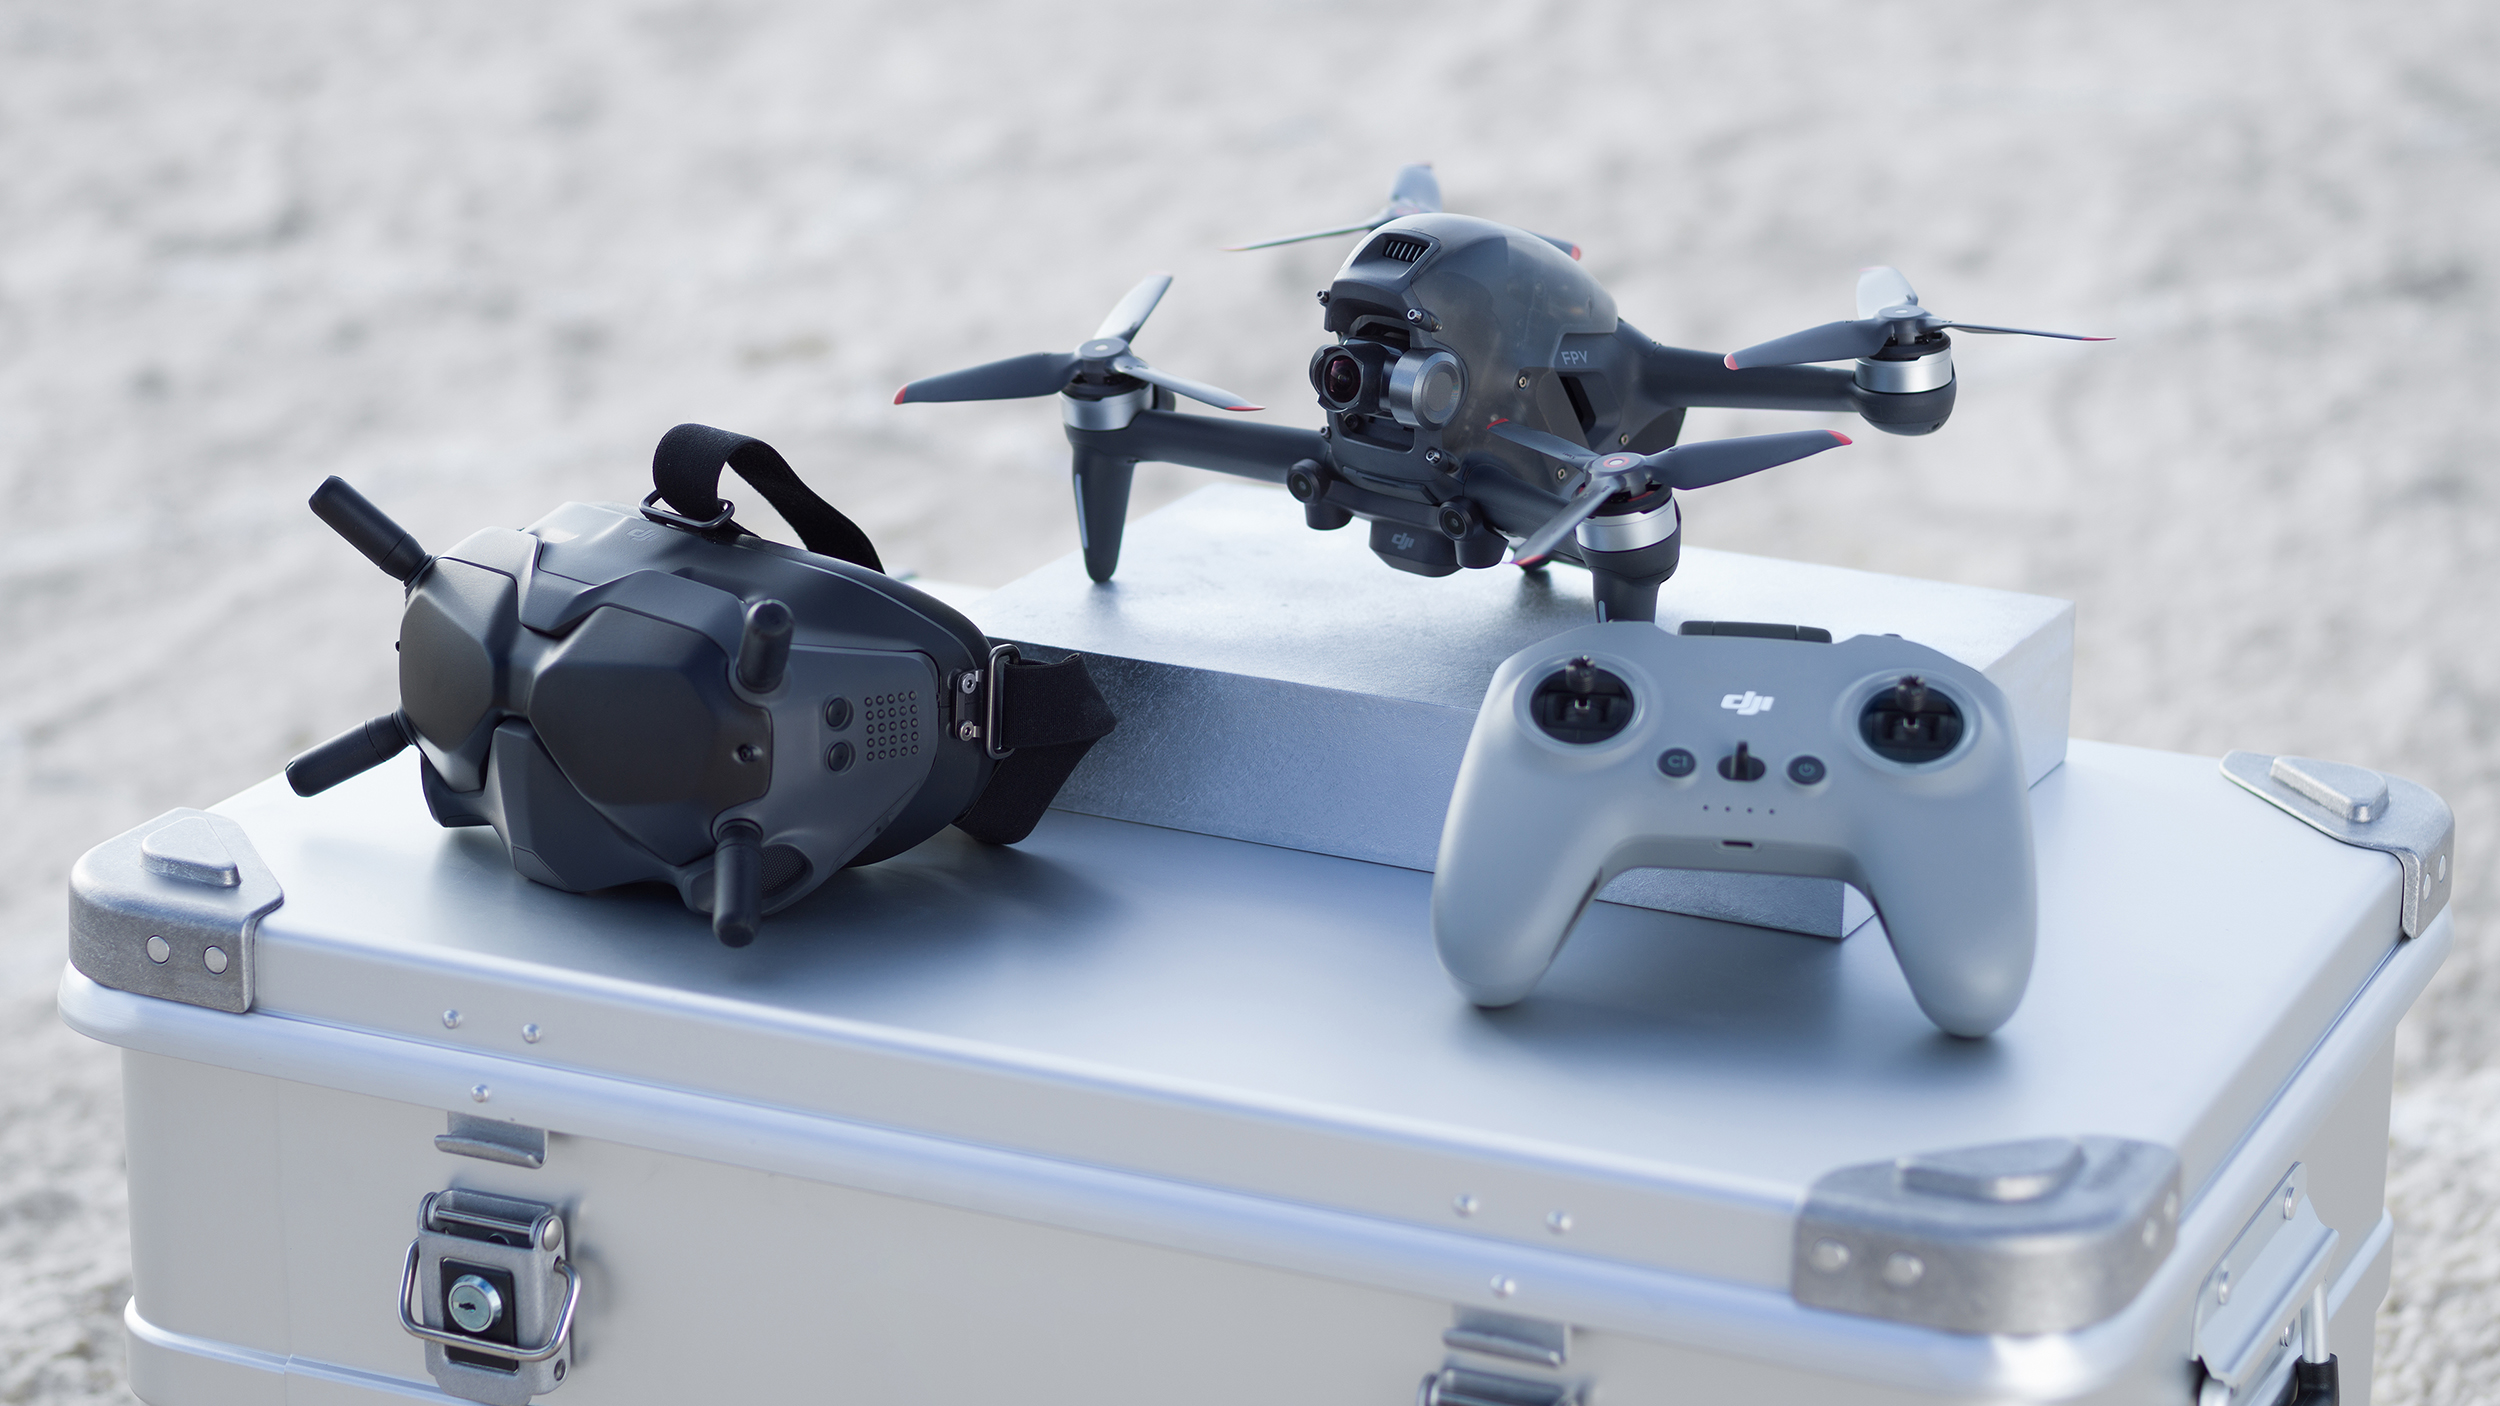 Hands on: DJI FPV drone review